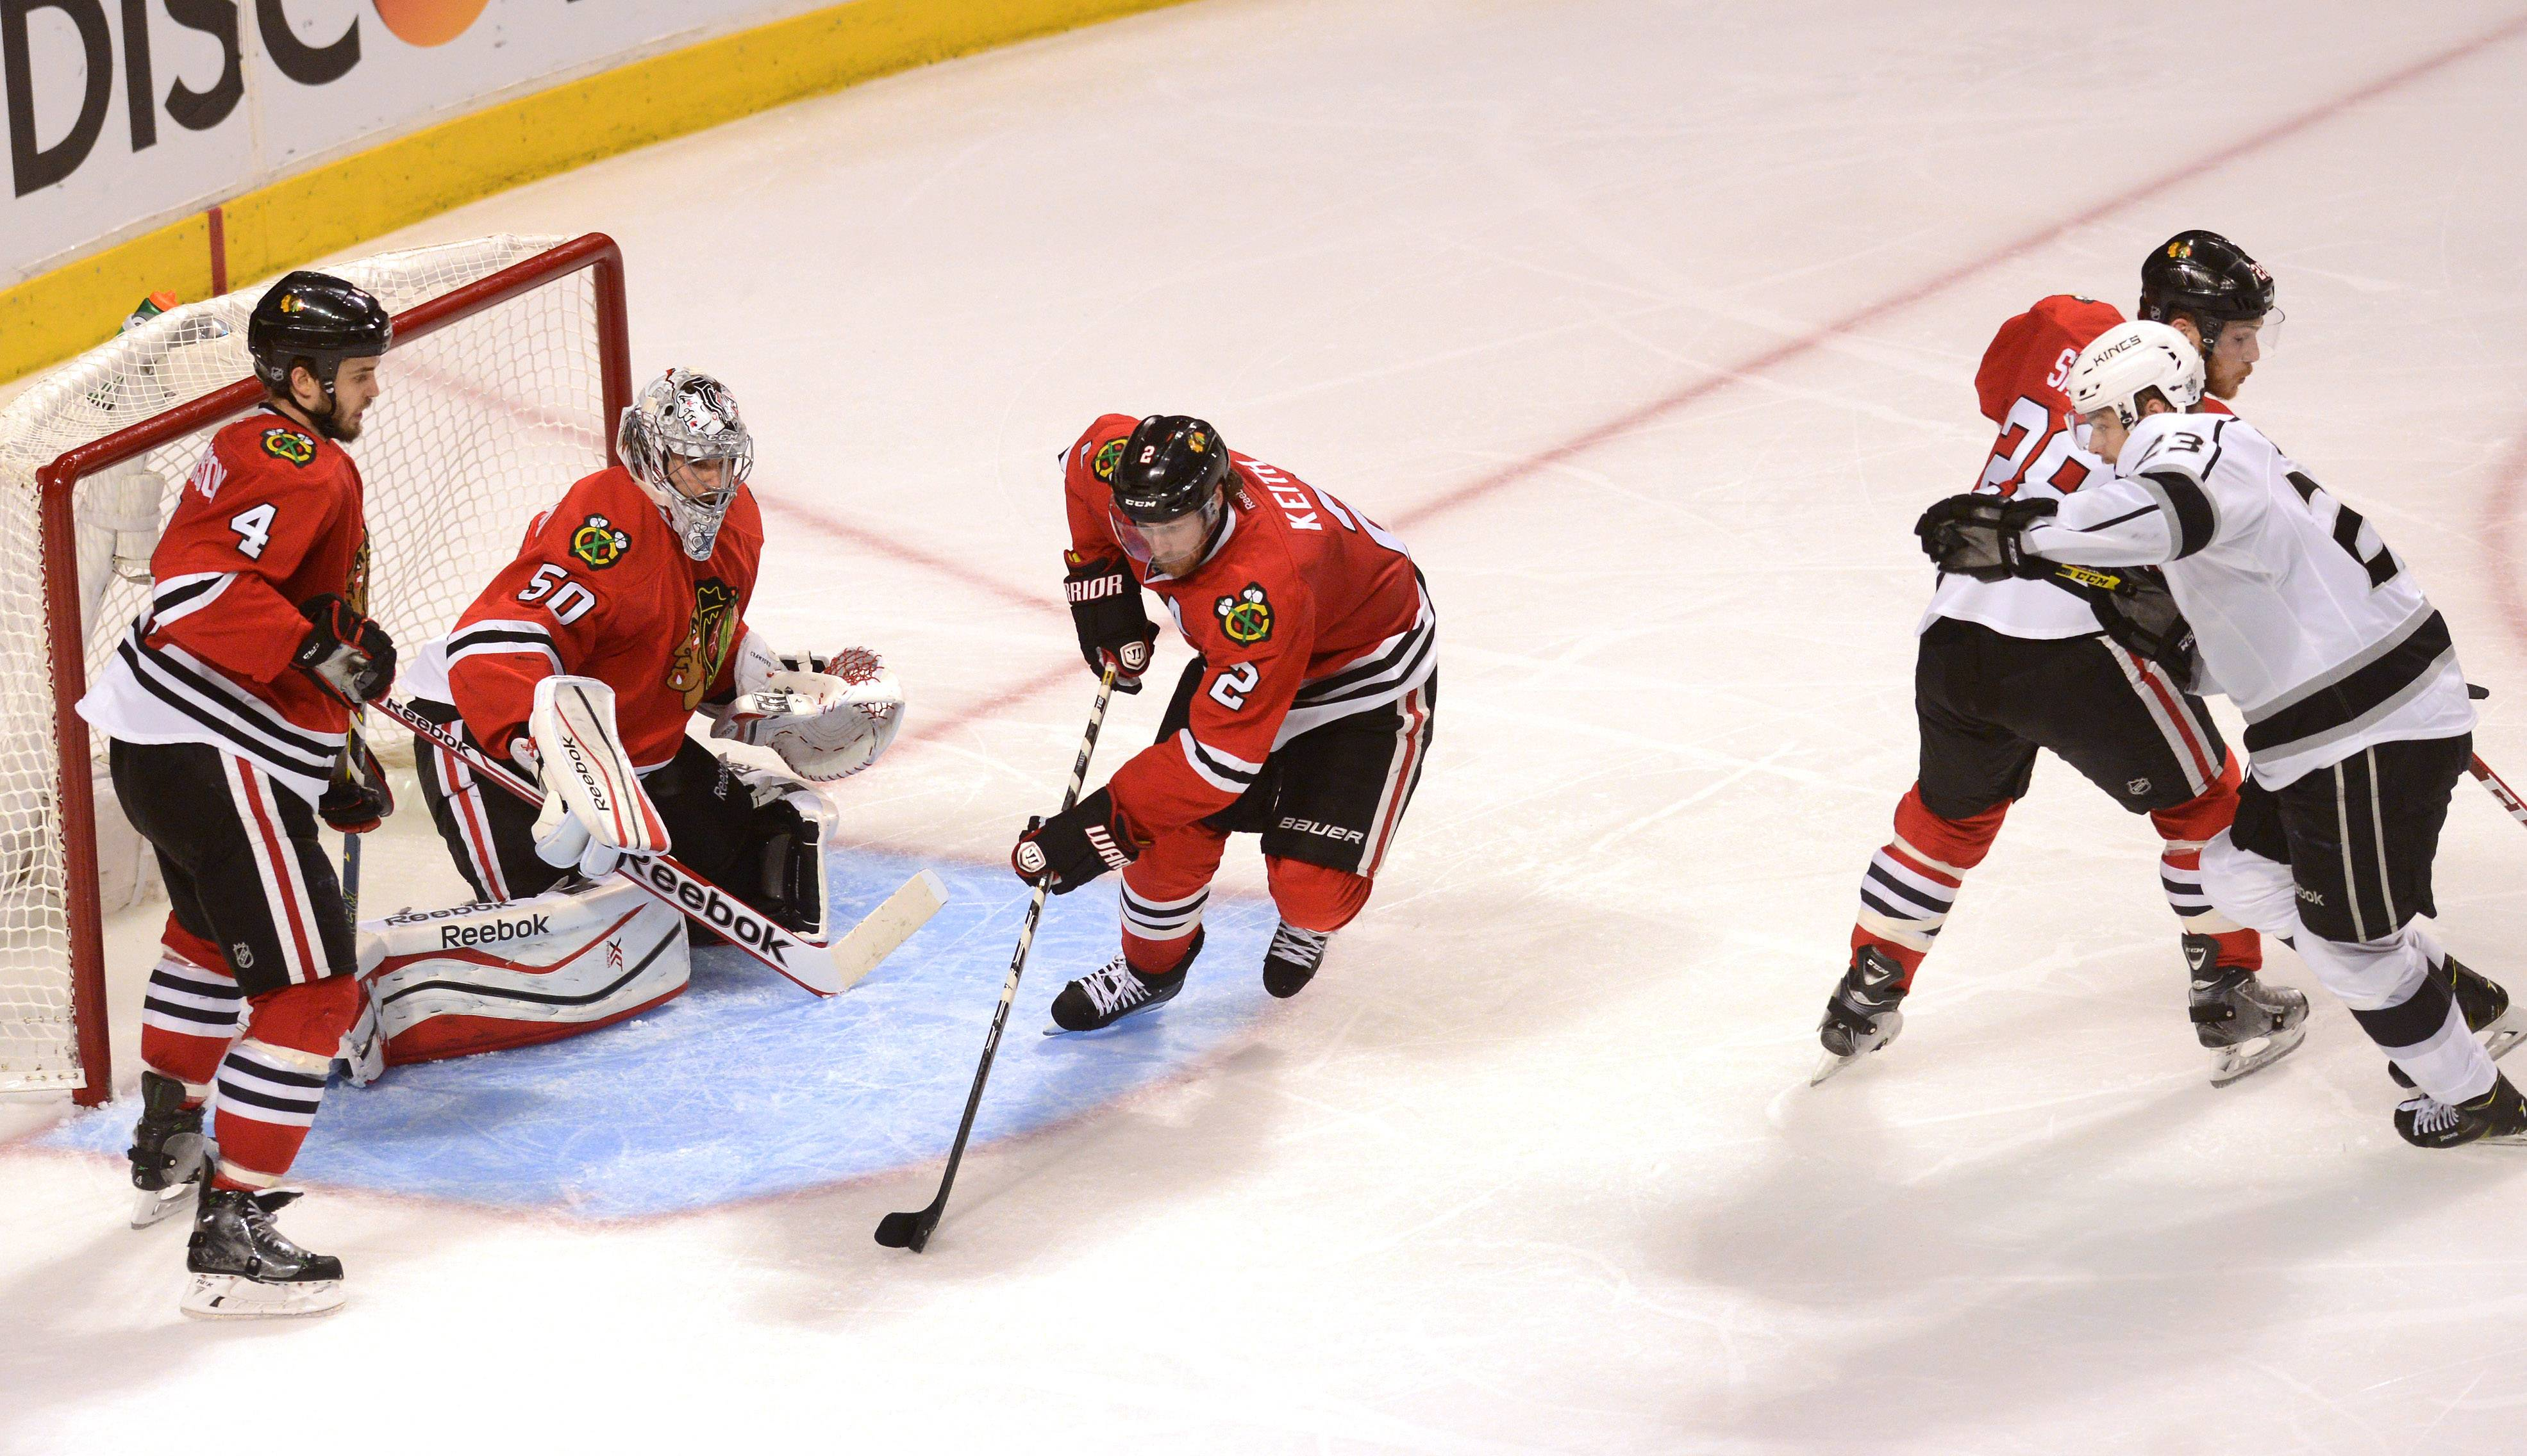 Chicago Blackhawks defenseman Duncan Keith scoops up a loose puck in front of his own net in the first OT.